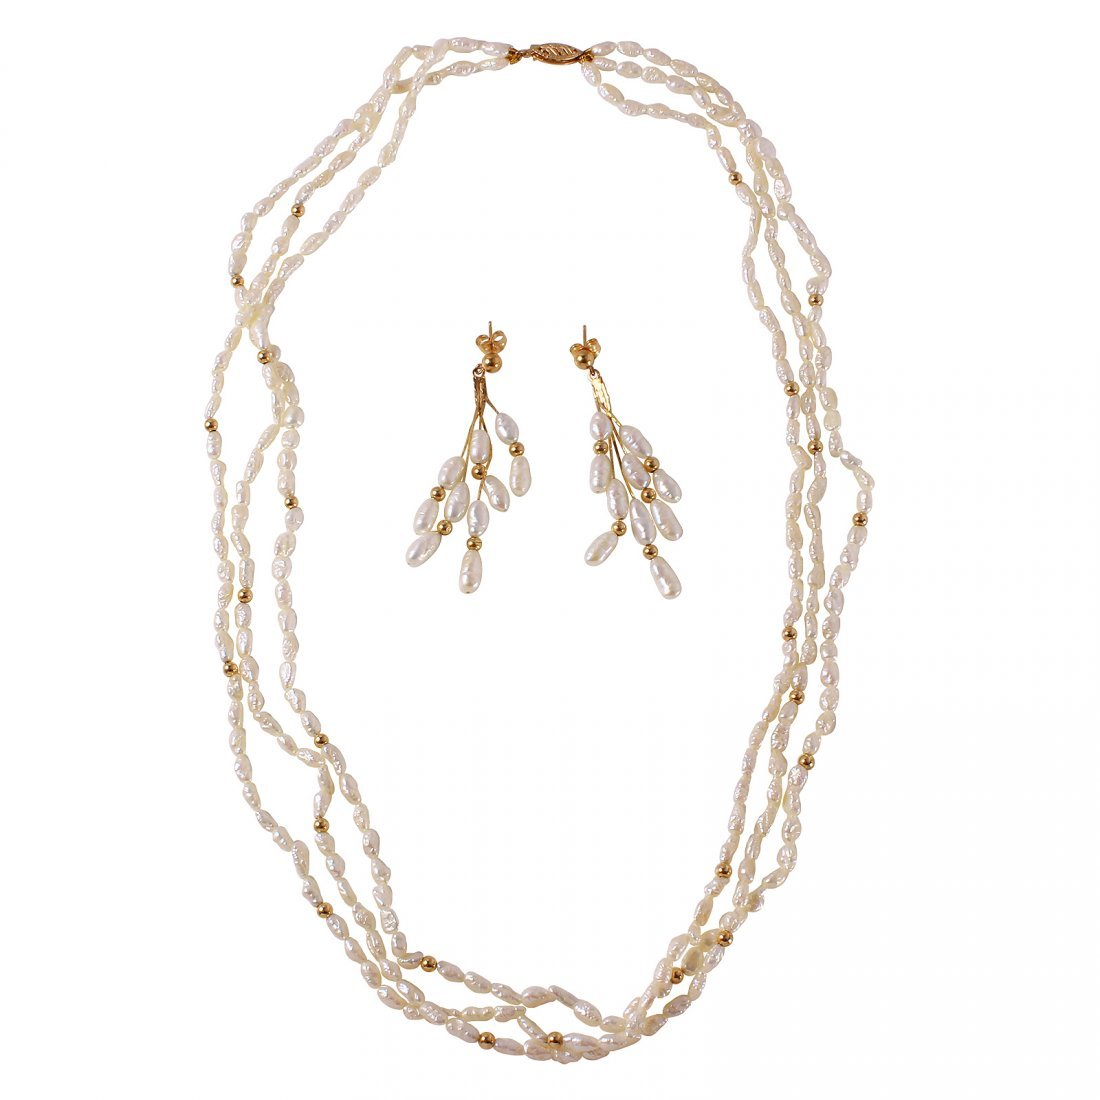 14KT Yellow Gold Pearl Necklace and Earrings